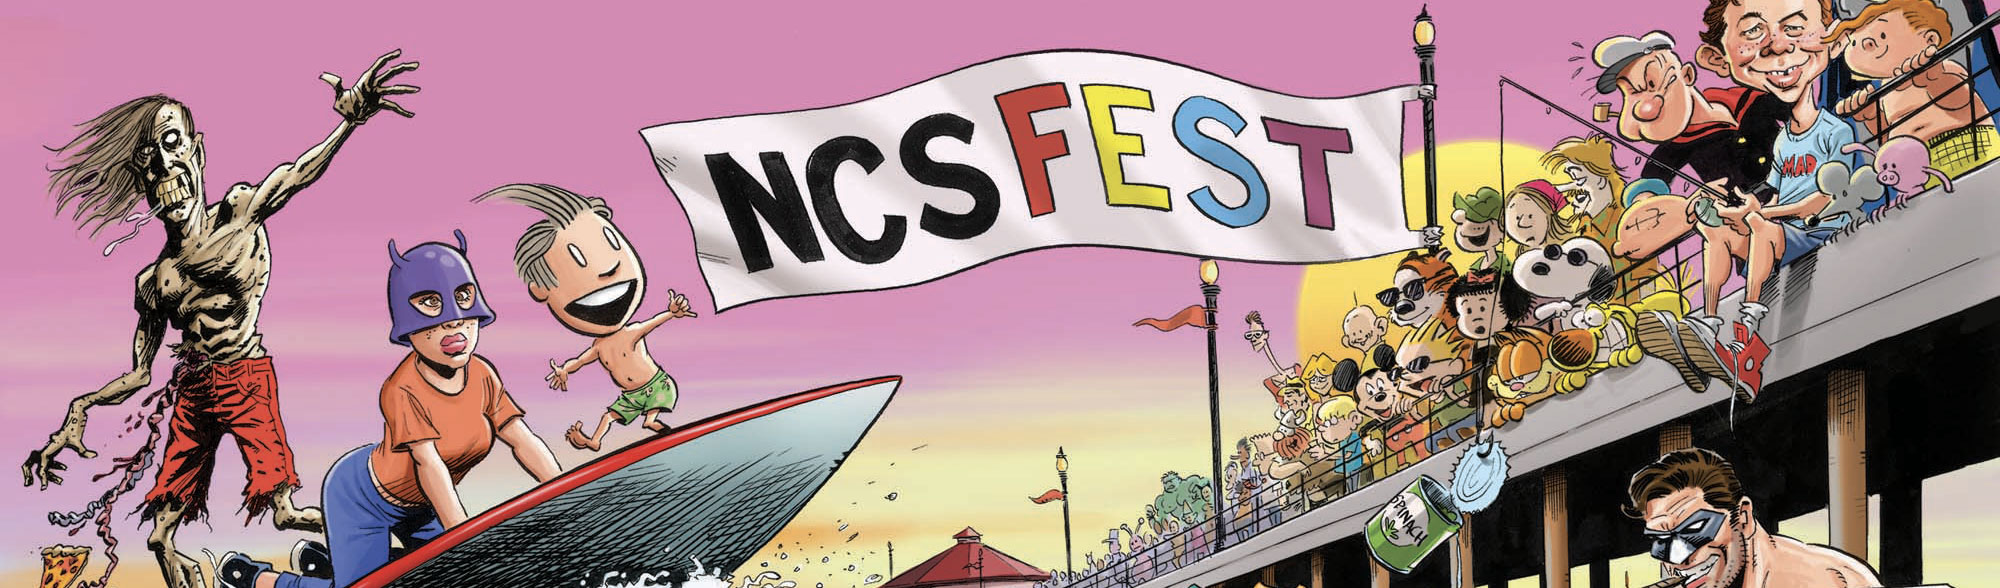 NCSFest 2019 Banner - February 2019